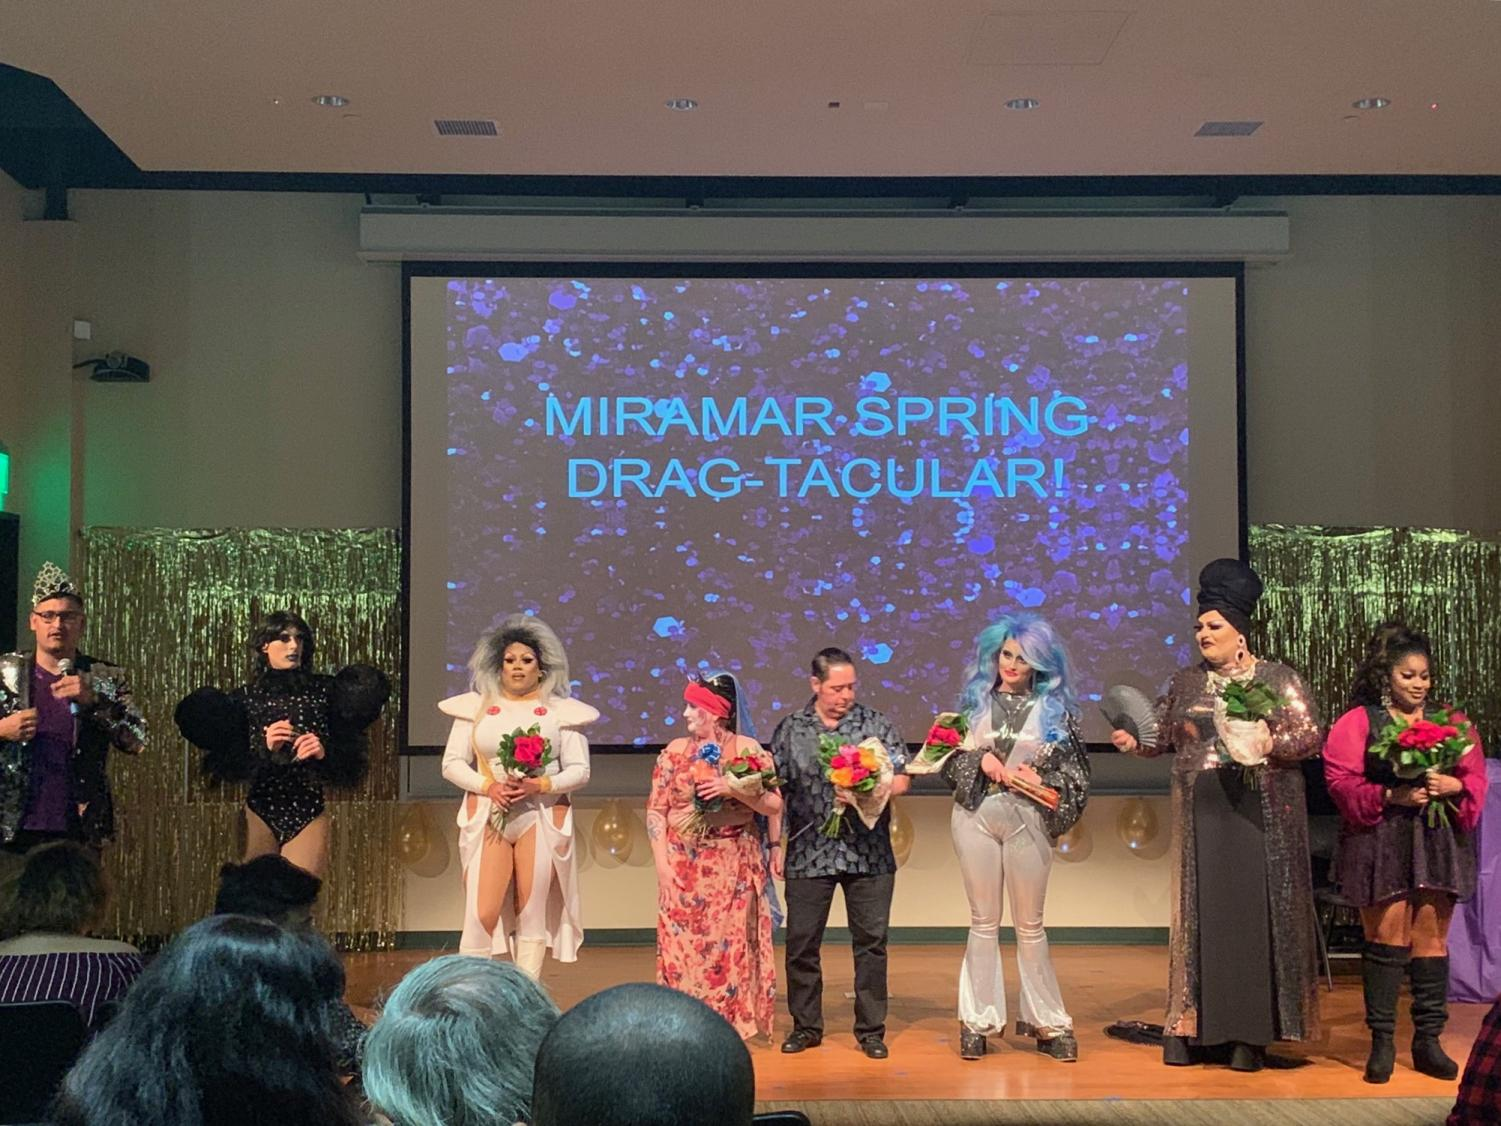 (From left to right)  Host Carlos Trujillo stands with performers Sienna Desire, Vanity Jones, Sister Develyn Angels, Rudy, Mercury Dee, Barbie Z, and Delicious Jones, as they accept flowers as a gift from Miramar's LGBTQ+ Alliance.